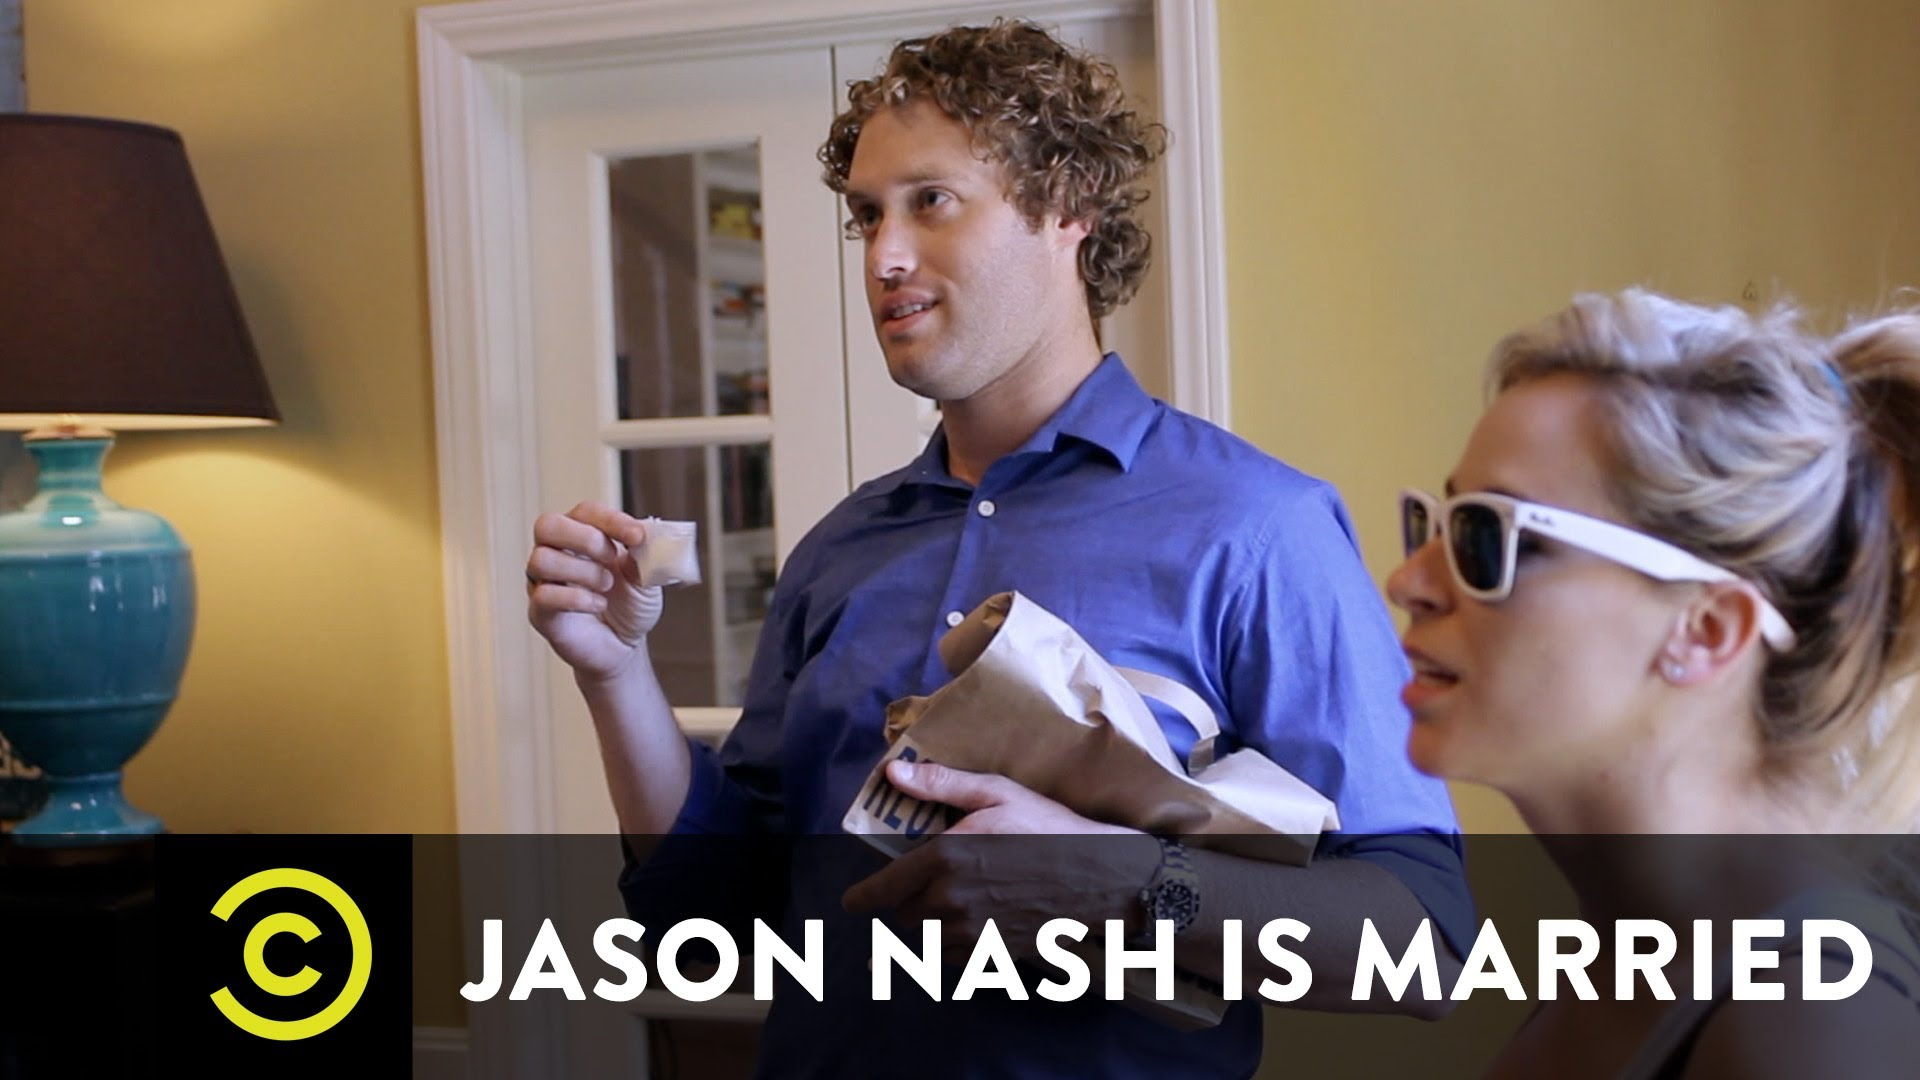 Jason Nash Is Married - Partying at Randy Plymouth's House